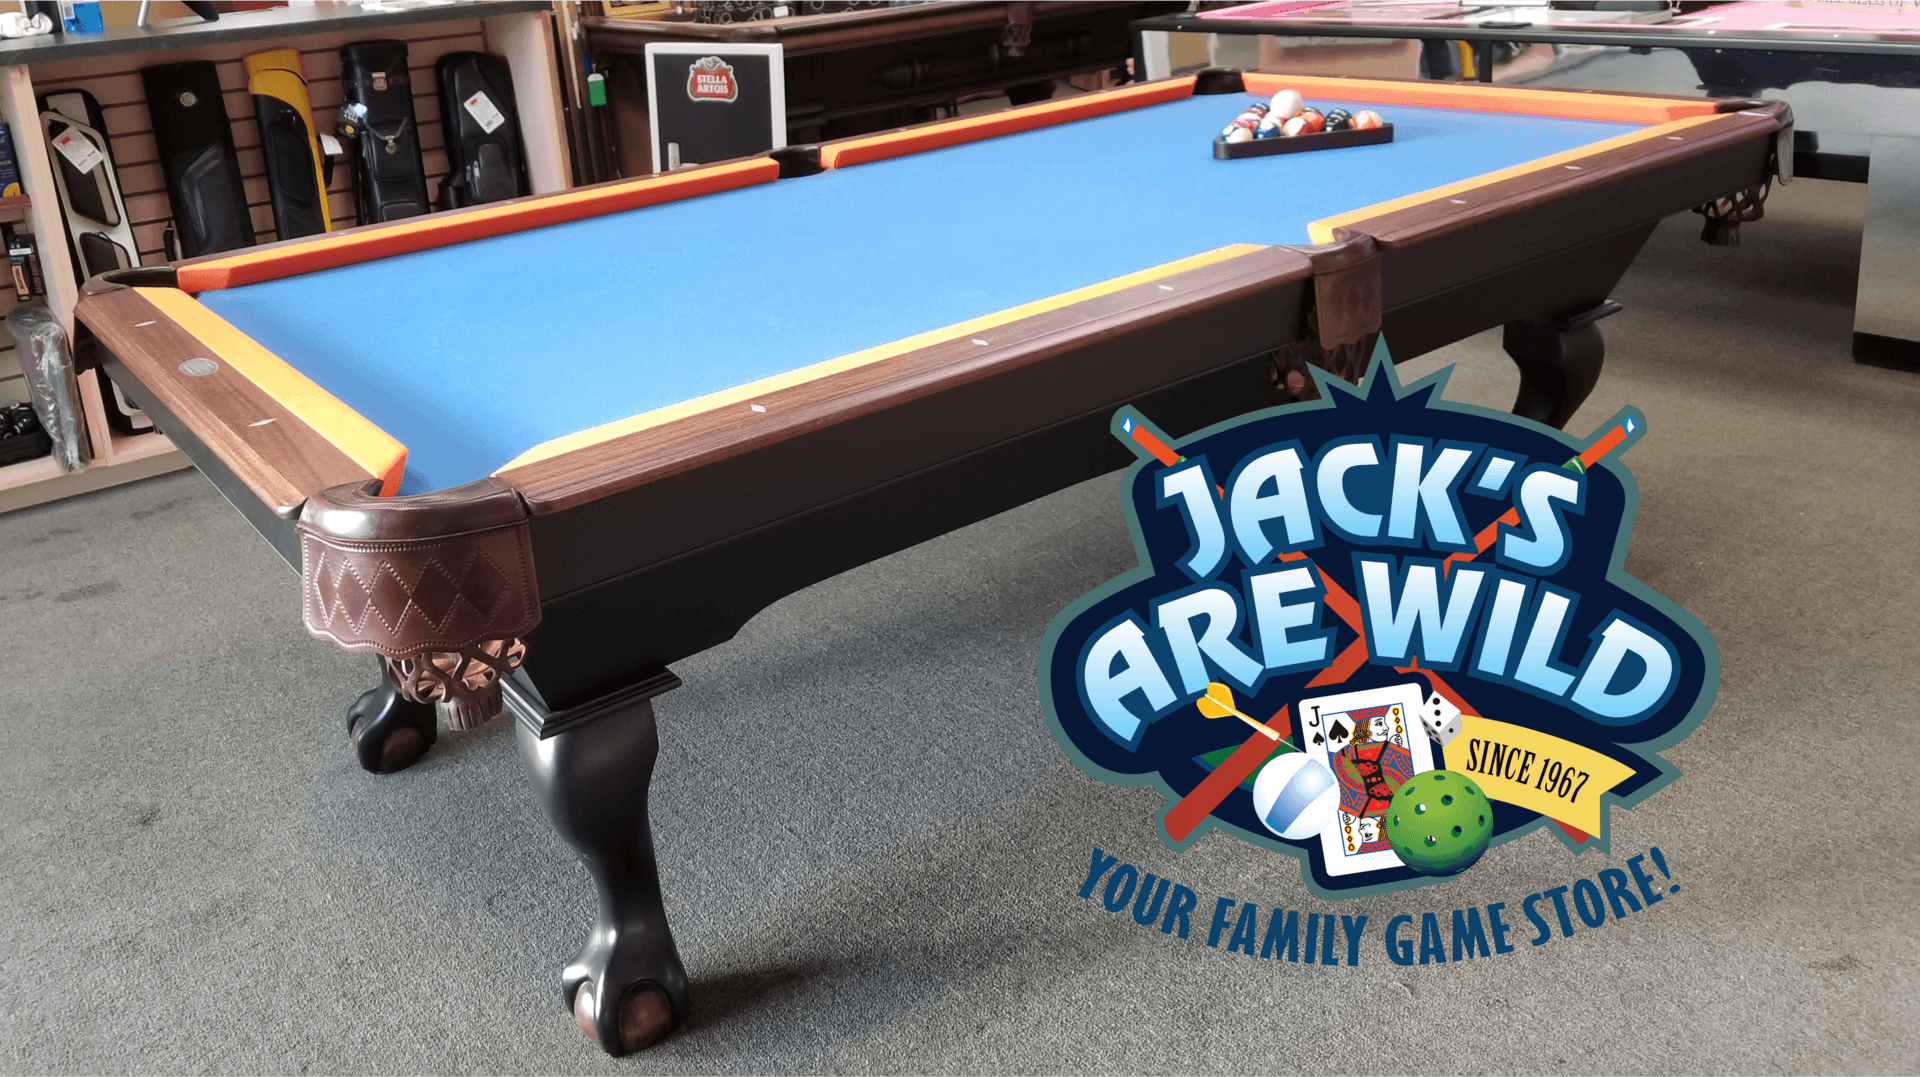 Jacks Are Wild, Pool, Poker, Darts, Pickleball, Billiards